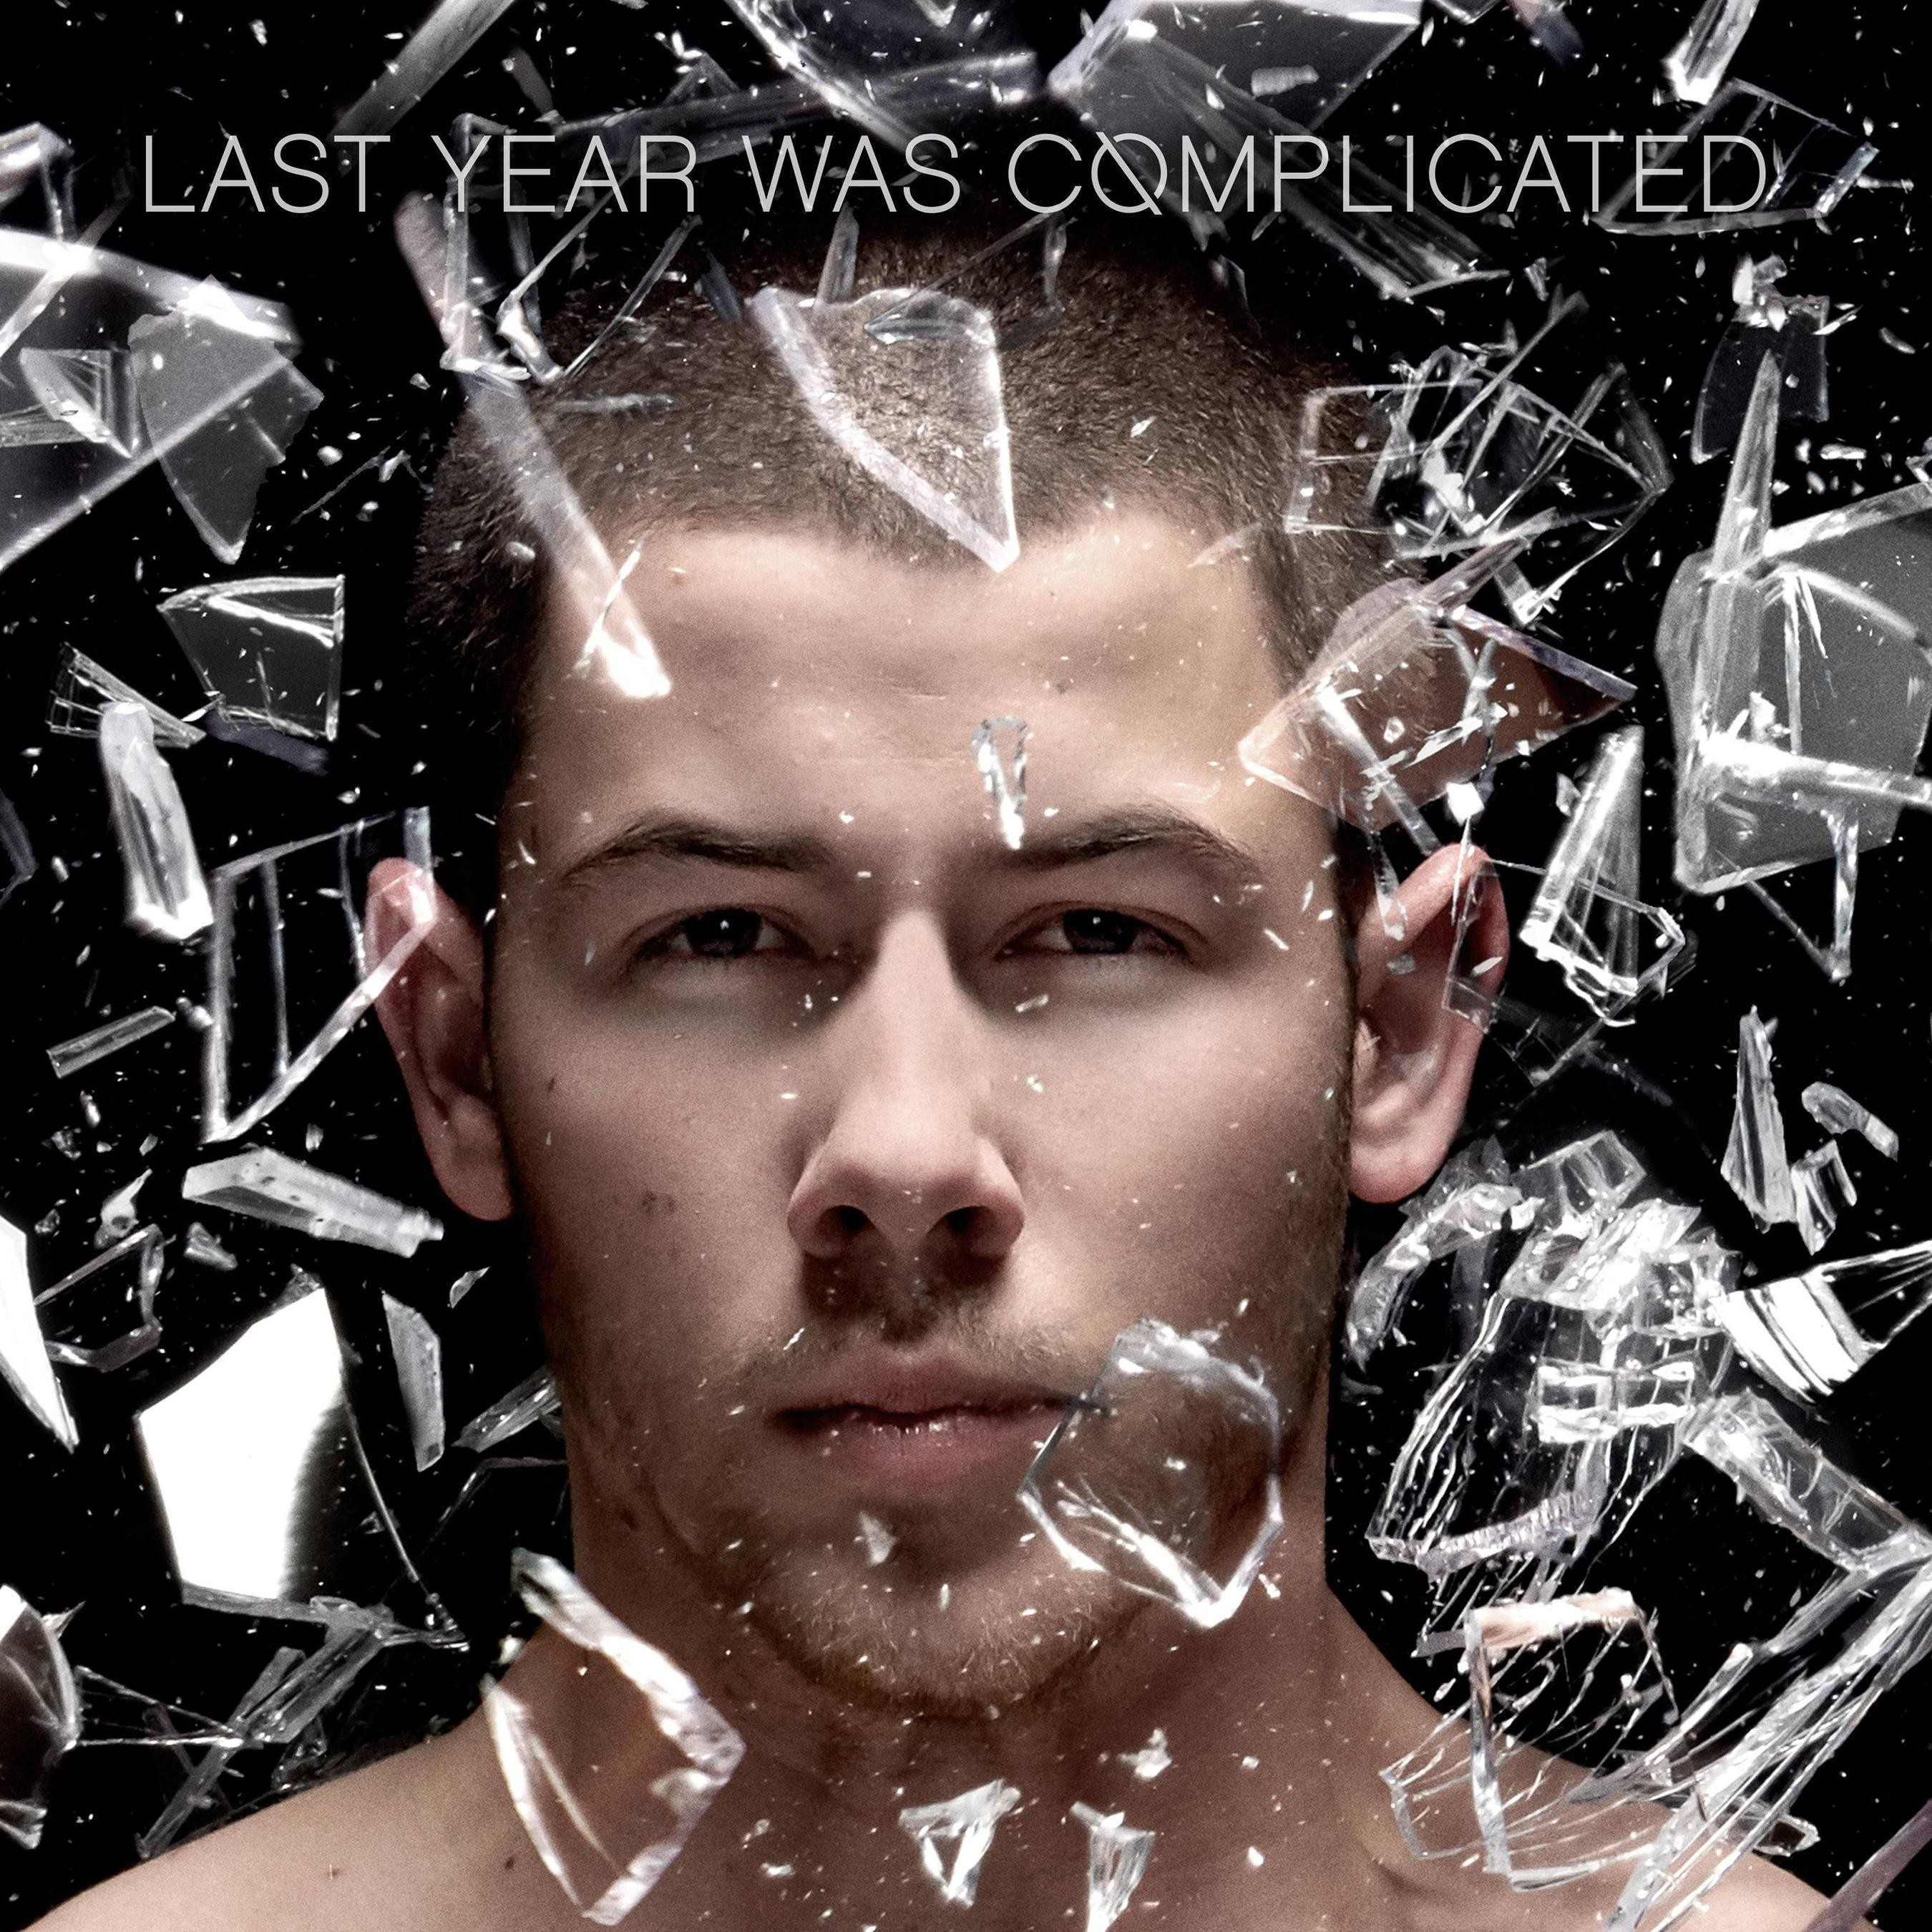 Capa do novo disco de Nick Jonas, 'Last Year Was Complicated' (Foto: Divulgao)